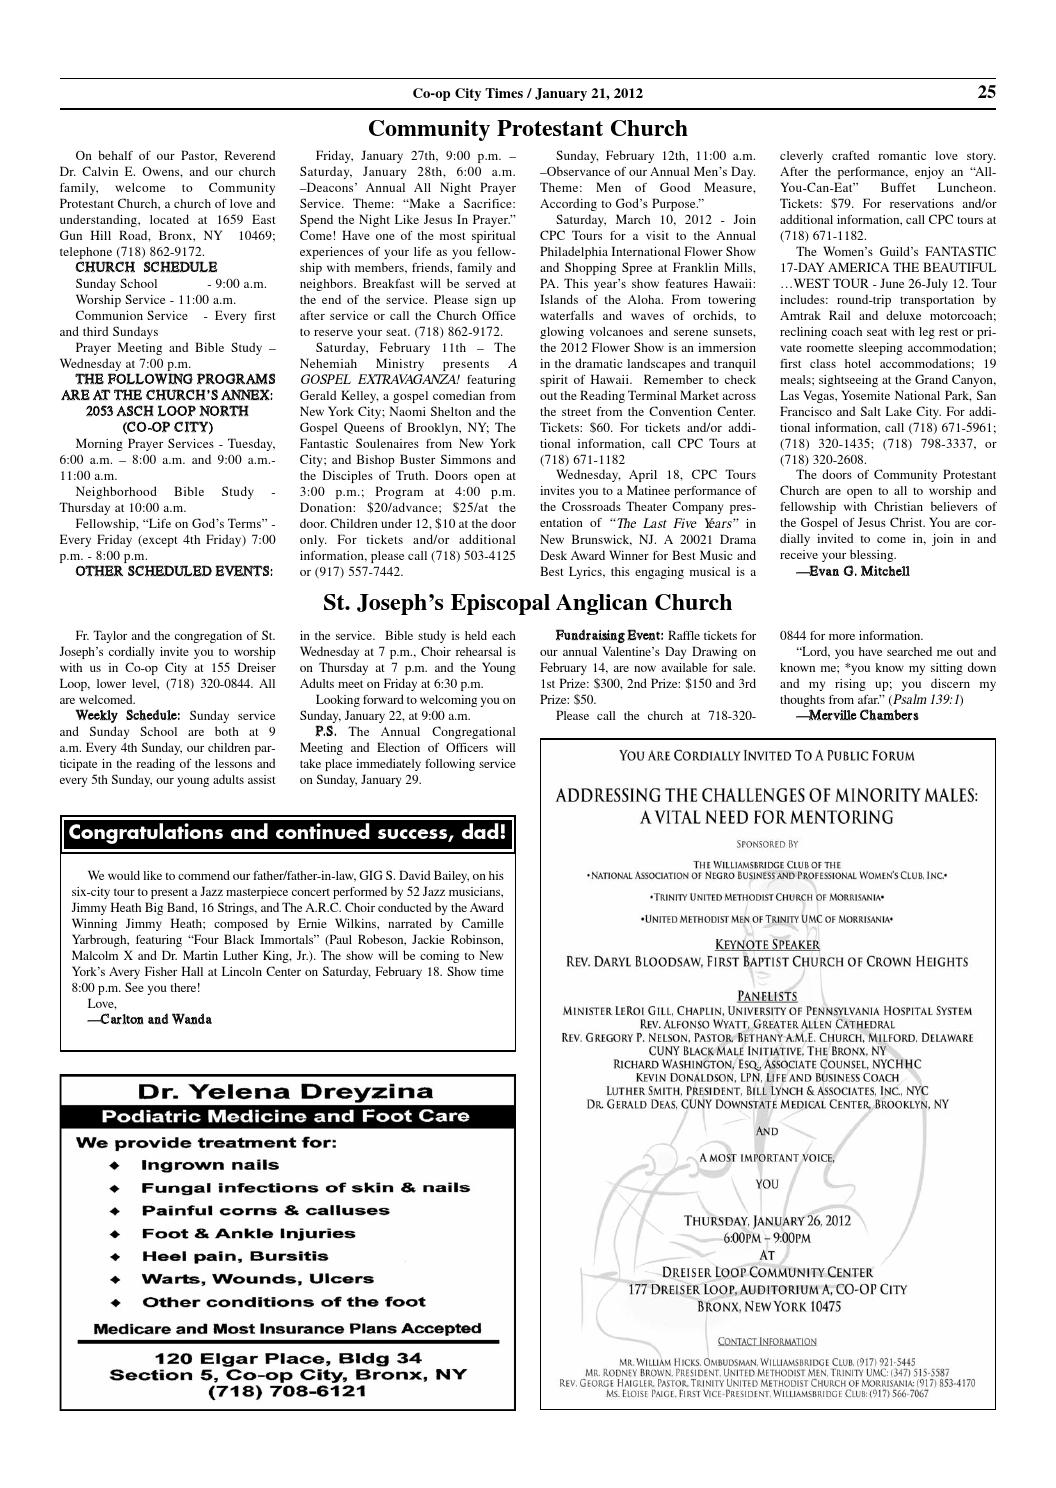 Co-op City Times 01/21/12 by Co-op City Times - issuu